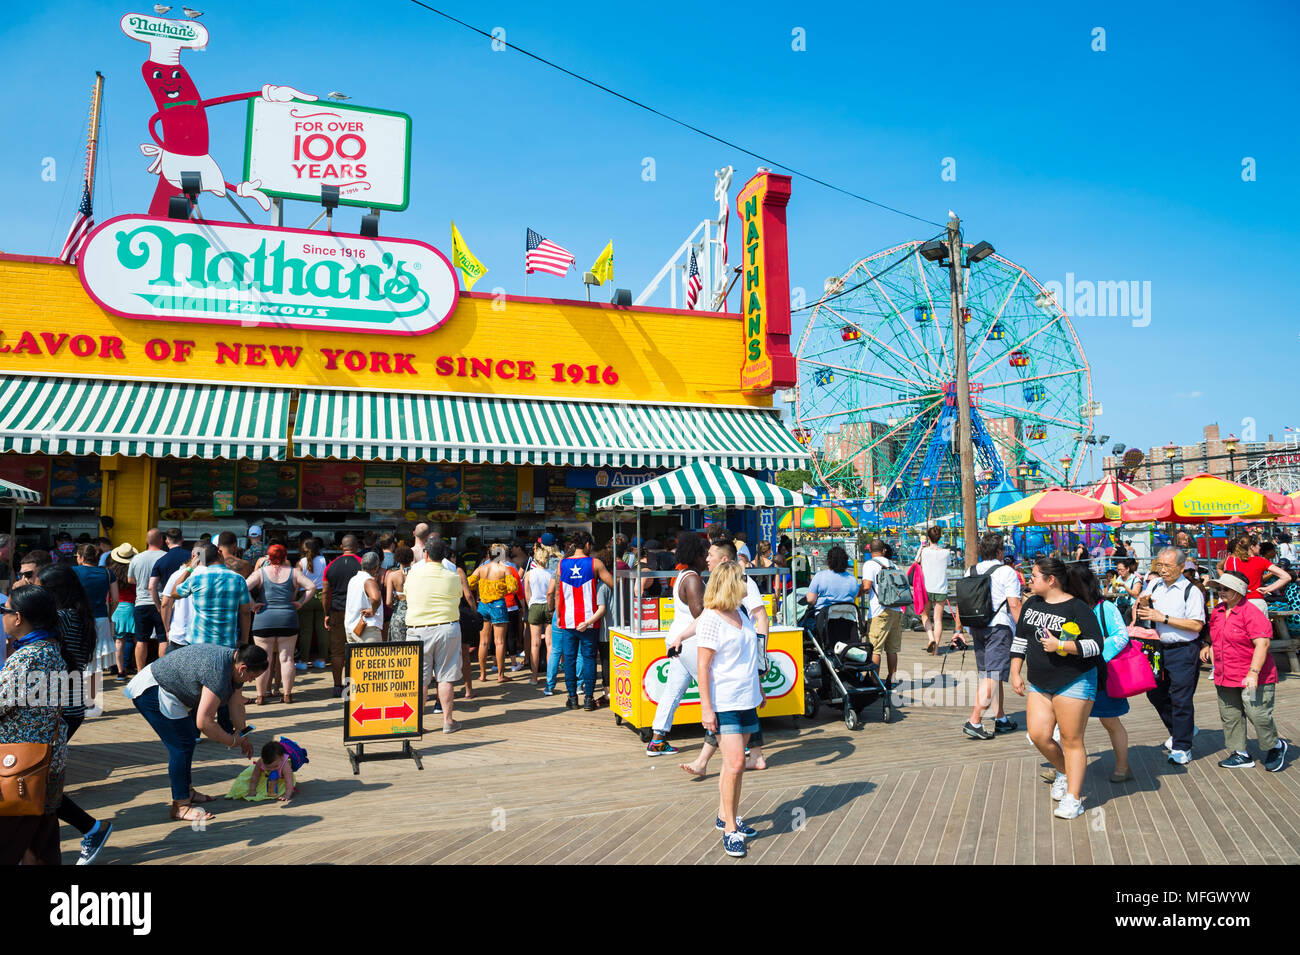 NEW YORK CITY - AUGUST 20, 2017: Visitors walk the iconic wooden Coney Island boardwalk outside the famous Nathan's hot dog stand on a hot summer day - Stock Image